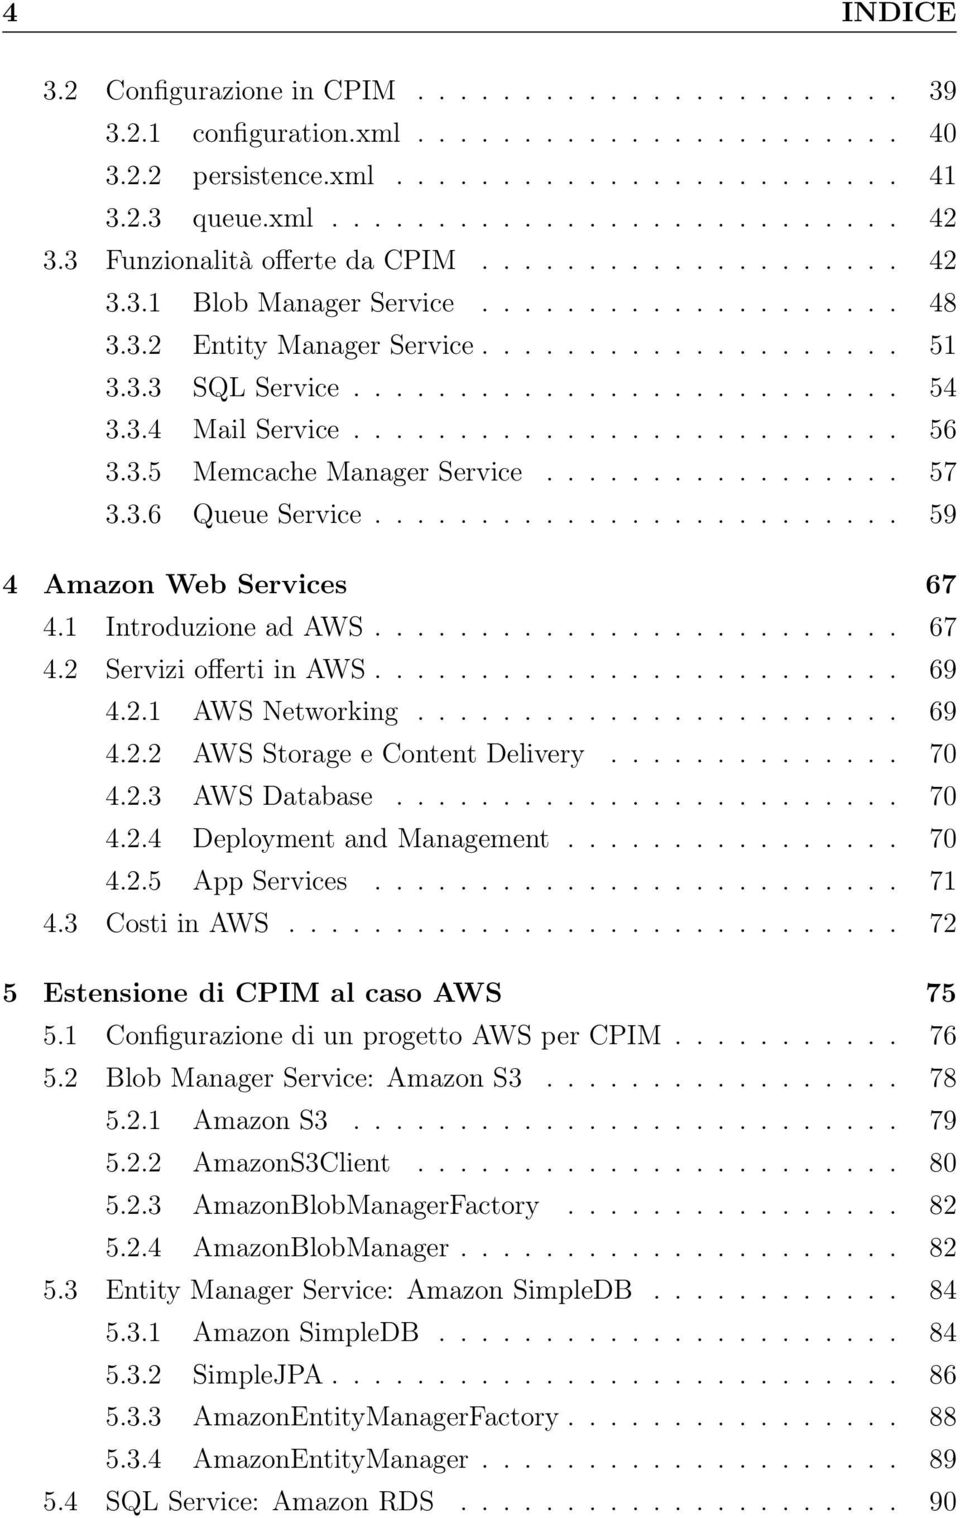 3.4 Mail Service.......................... 56 3.3.5 Memcache Manager Service................. 57 3.3.6 Queue Service......................... 59 4 Amazon Web Services 67 4.1 Introduzione ad AWS......................... 67 4.2 Servizi offerti in AWS.